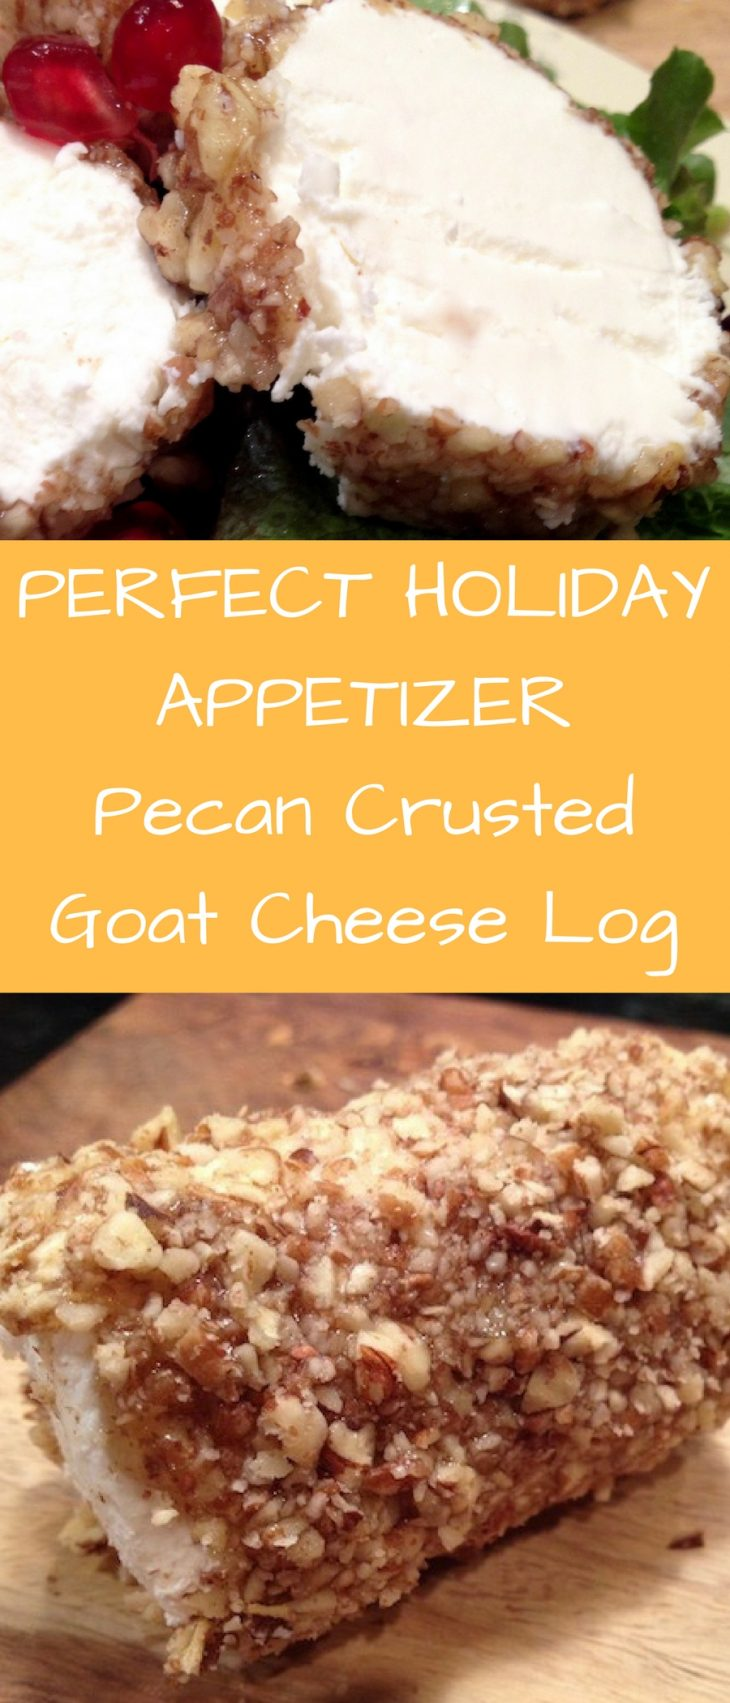 pecan crusted goat cheese log